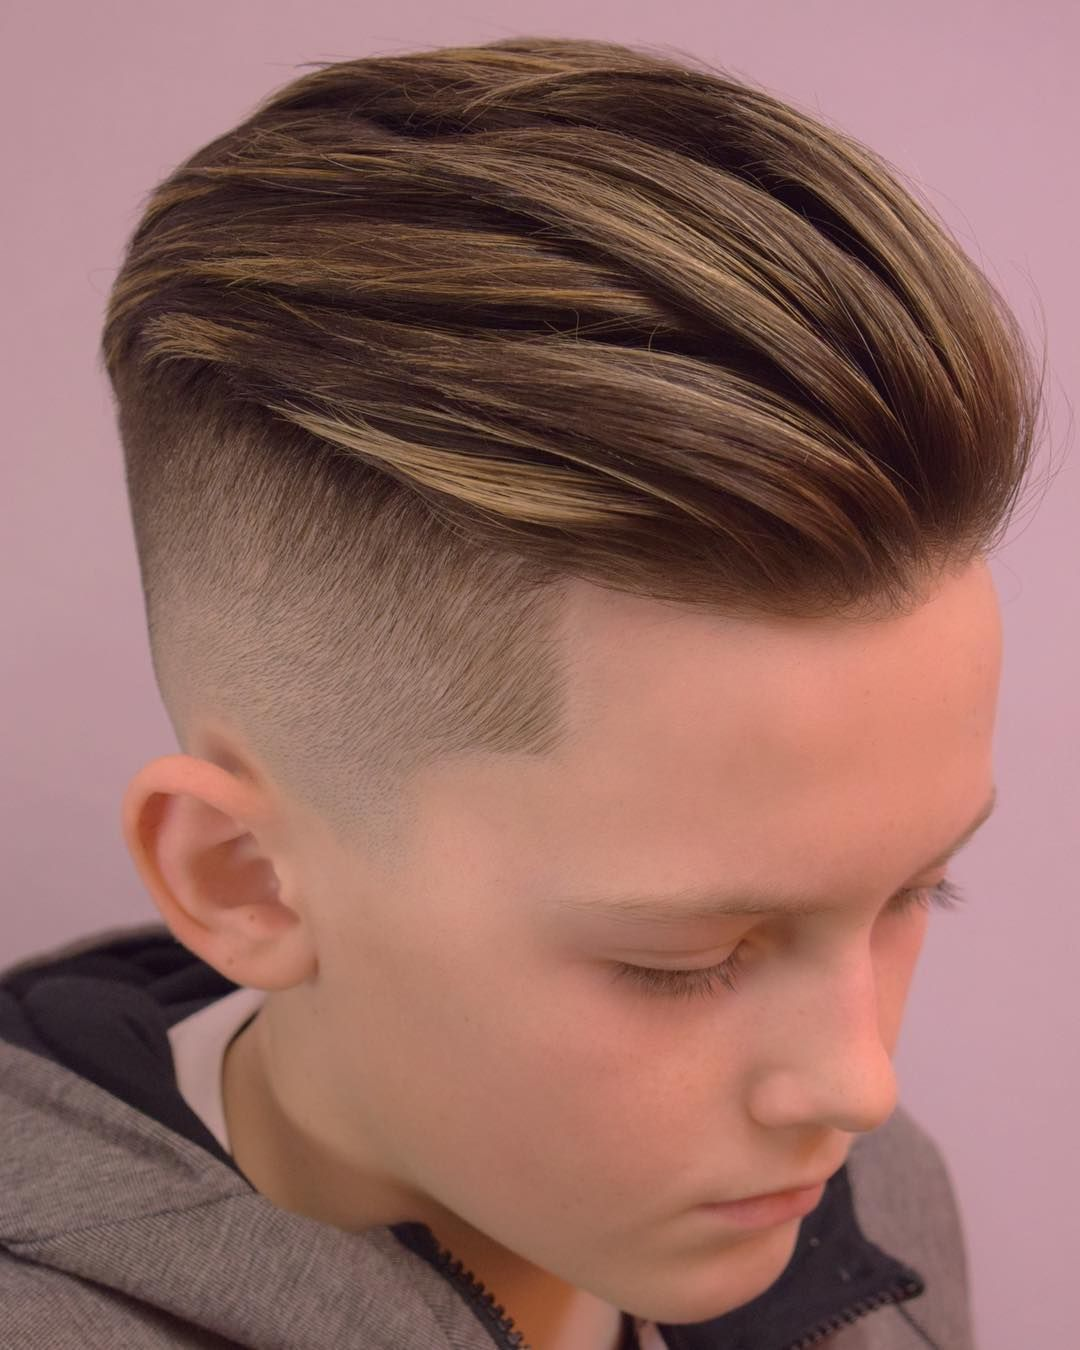 Hairstyles For Boys Unique Undercuts Hairstyles Boys  Textured Hairstyles & Haircuts